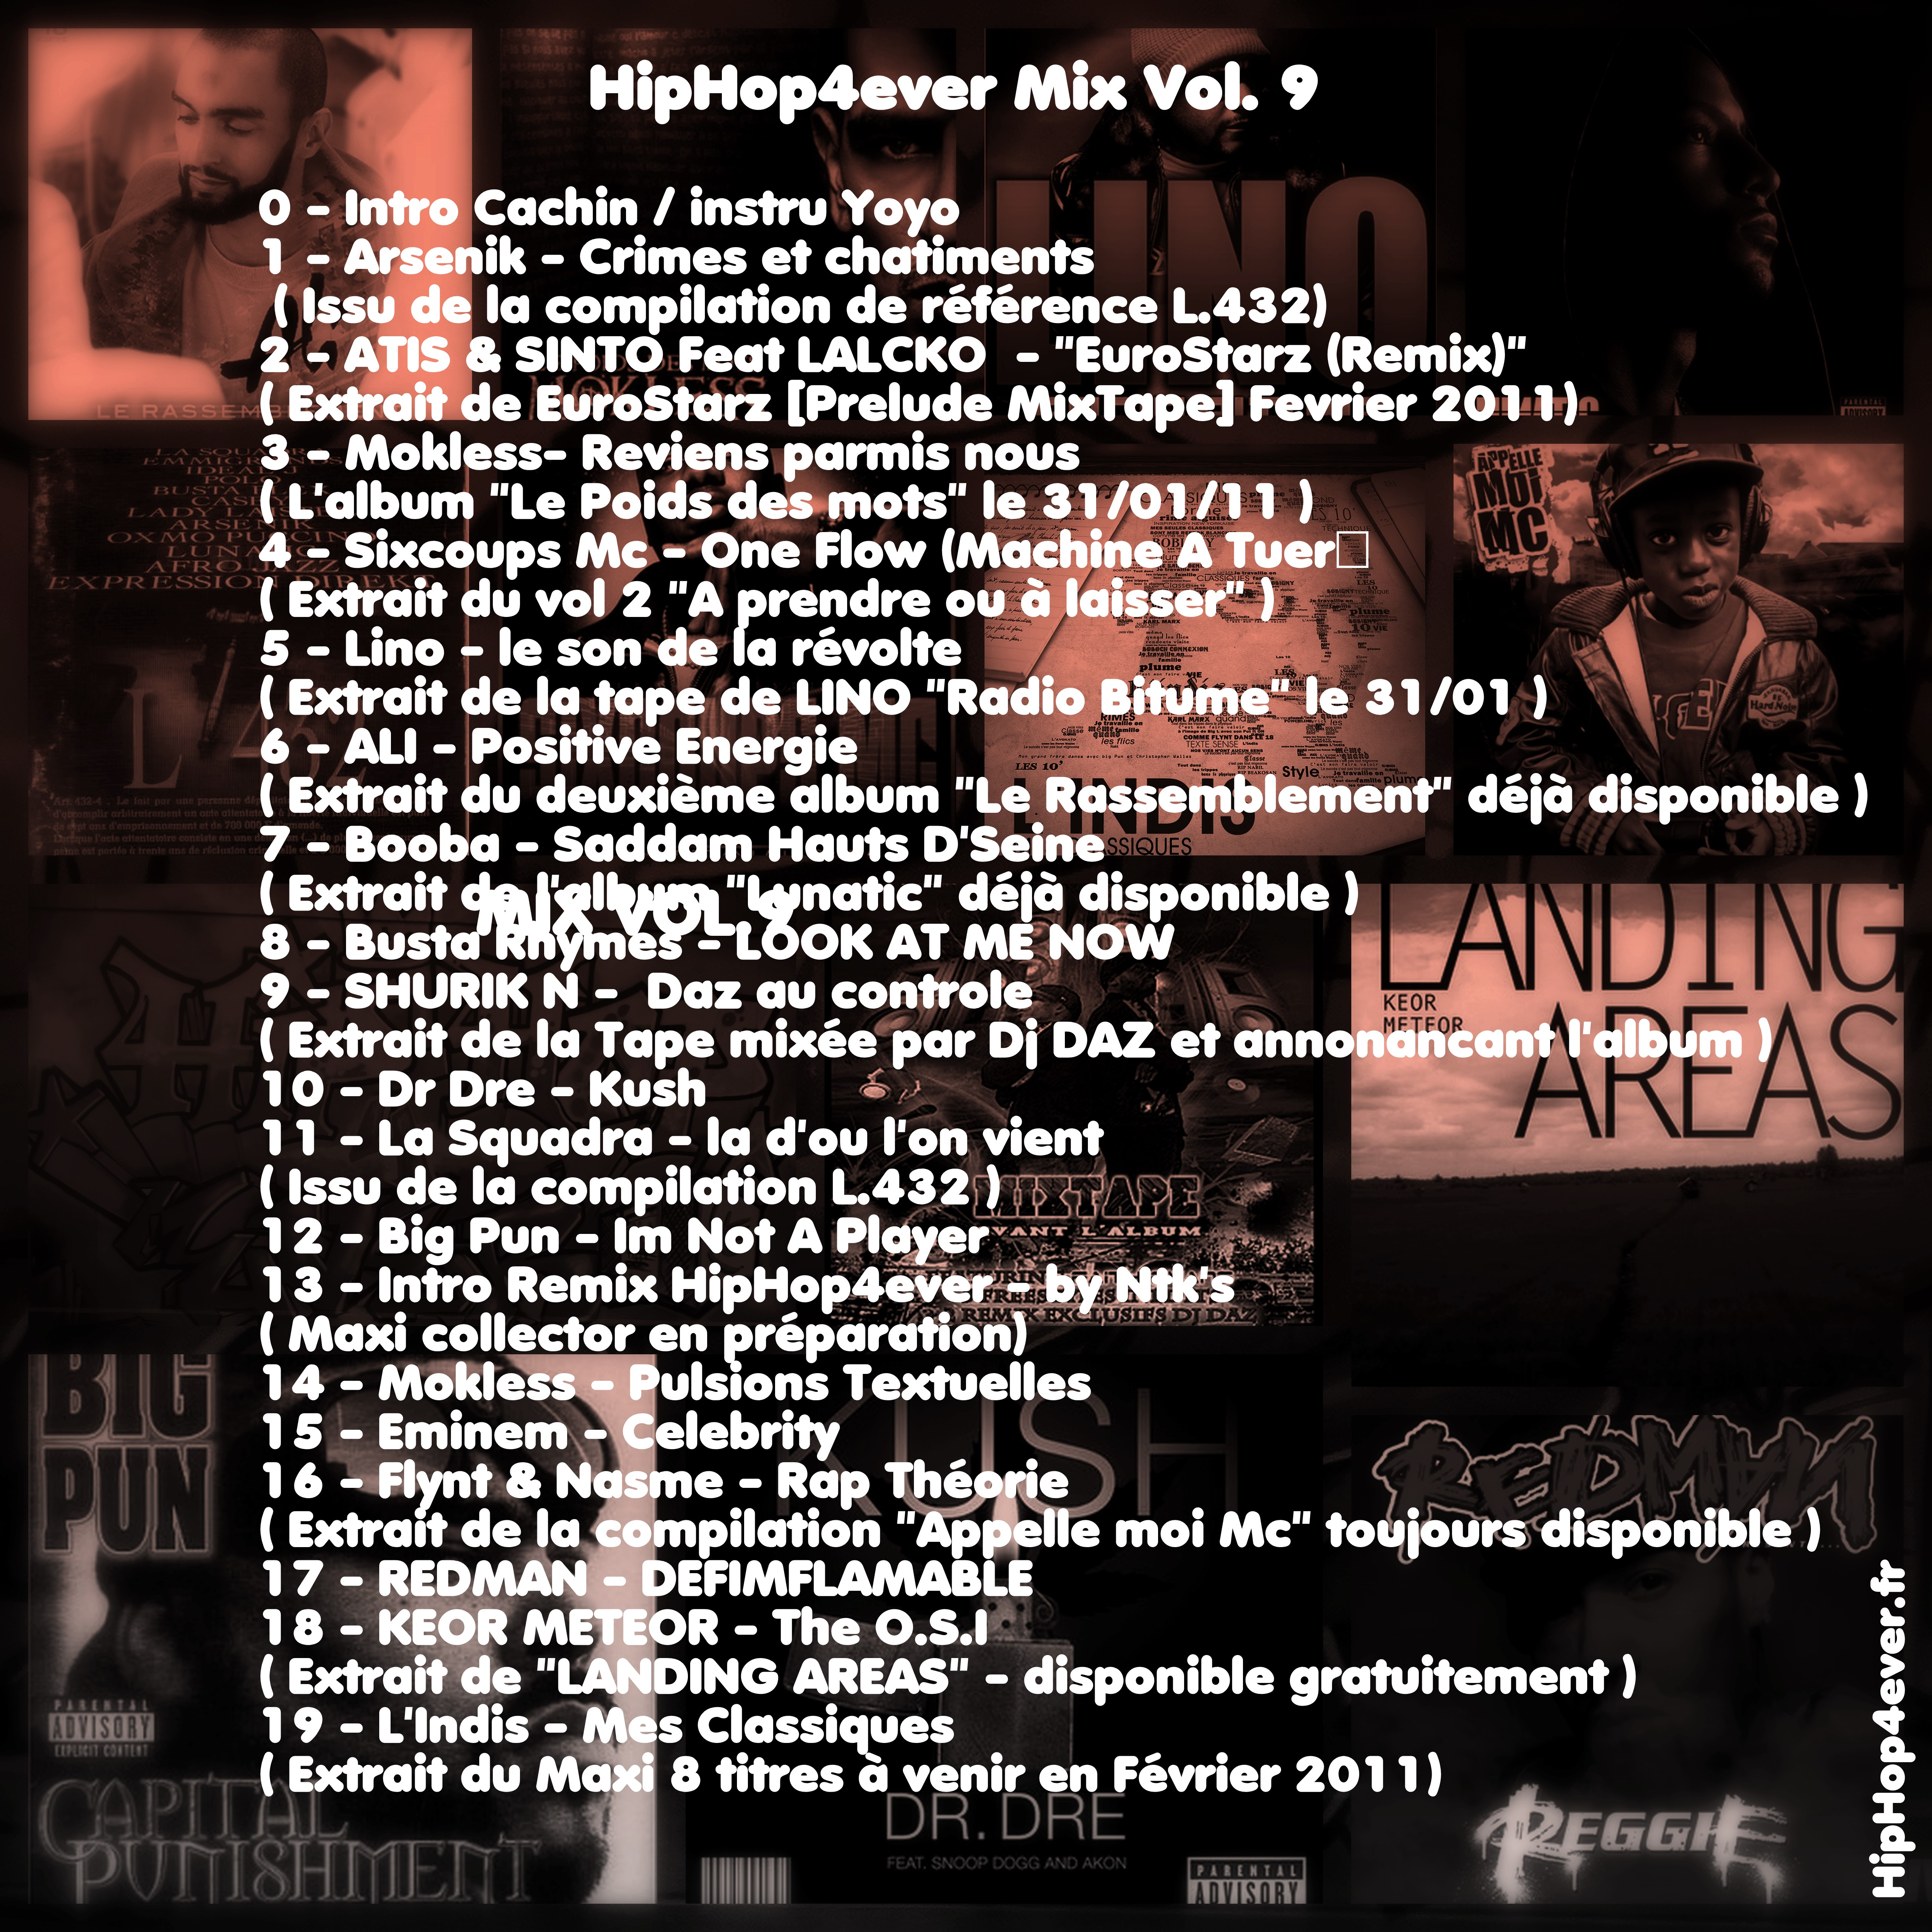 hiphop4ever-mix-vol-9-back